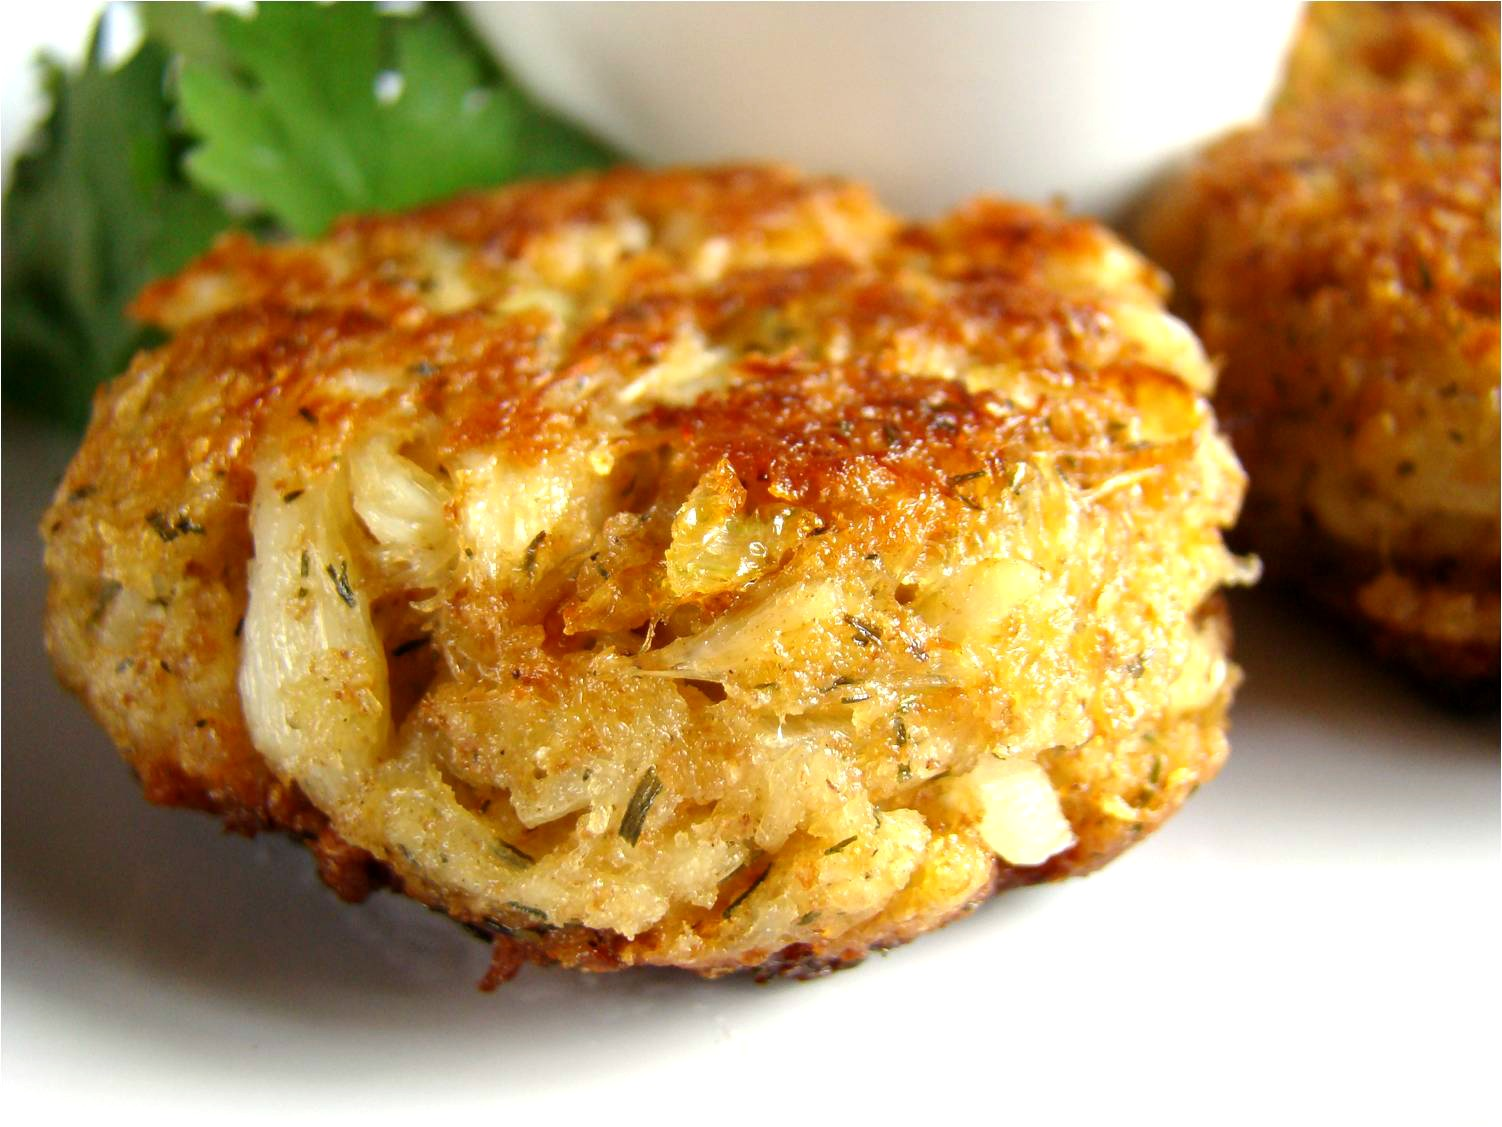 Crab Cake Photos